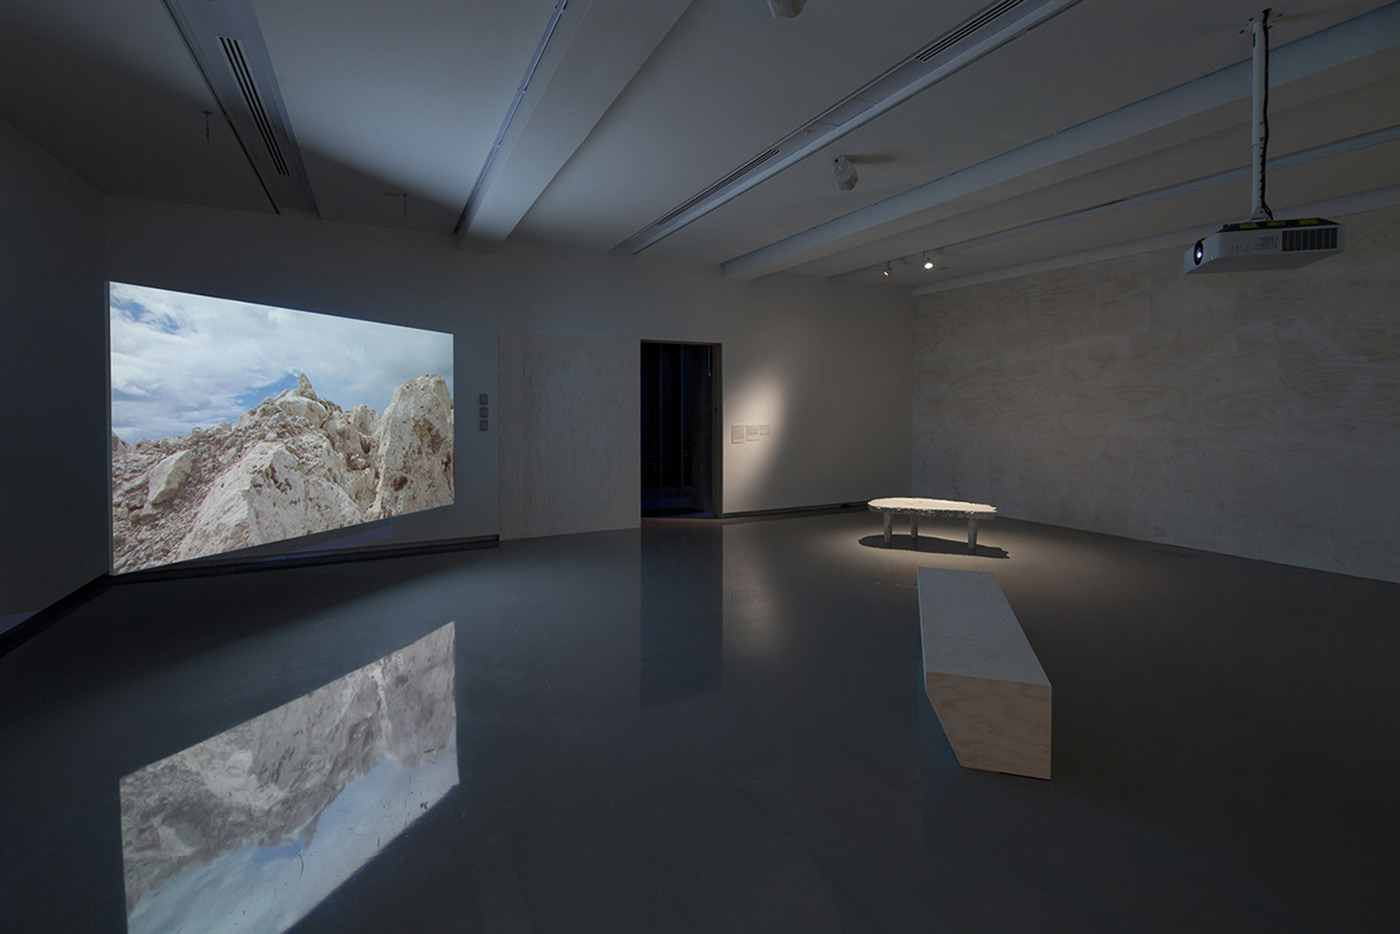 Nicholas Mangan, Nauru—Notes from a Cretaceous World, 2010. Installation view, Monash University Museum of Art, Melbourne, 2016. Photographer: Andrew Curtis.